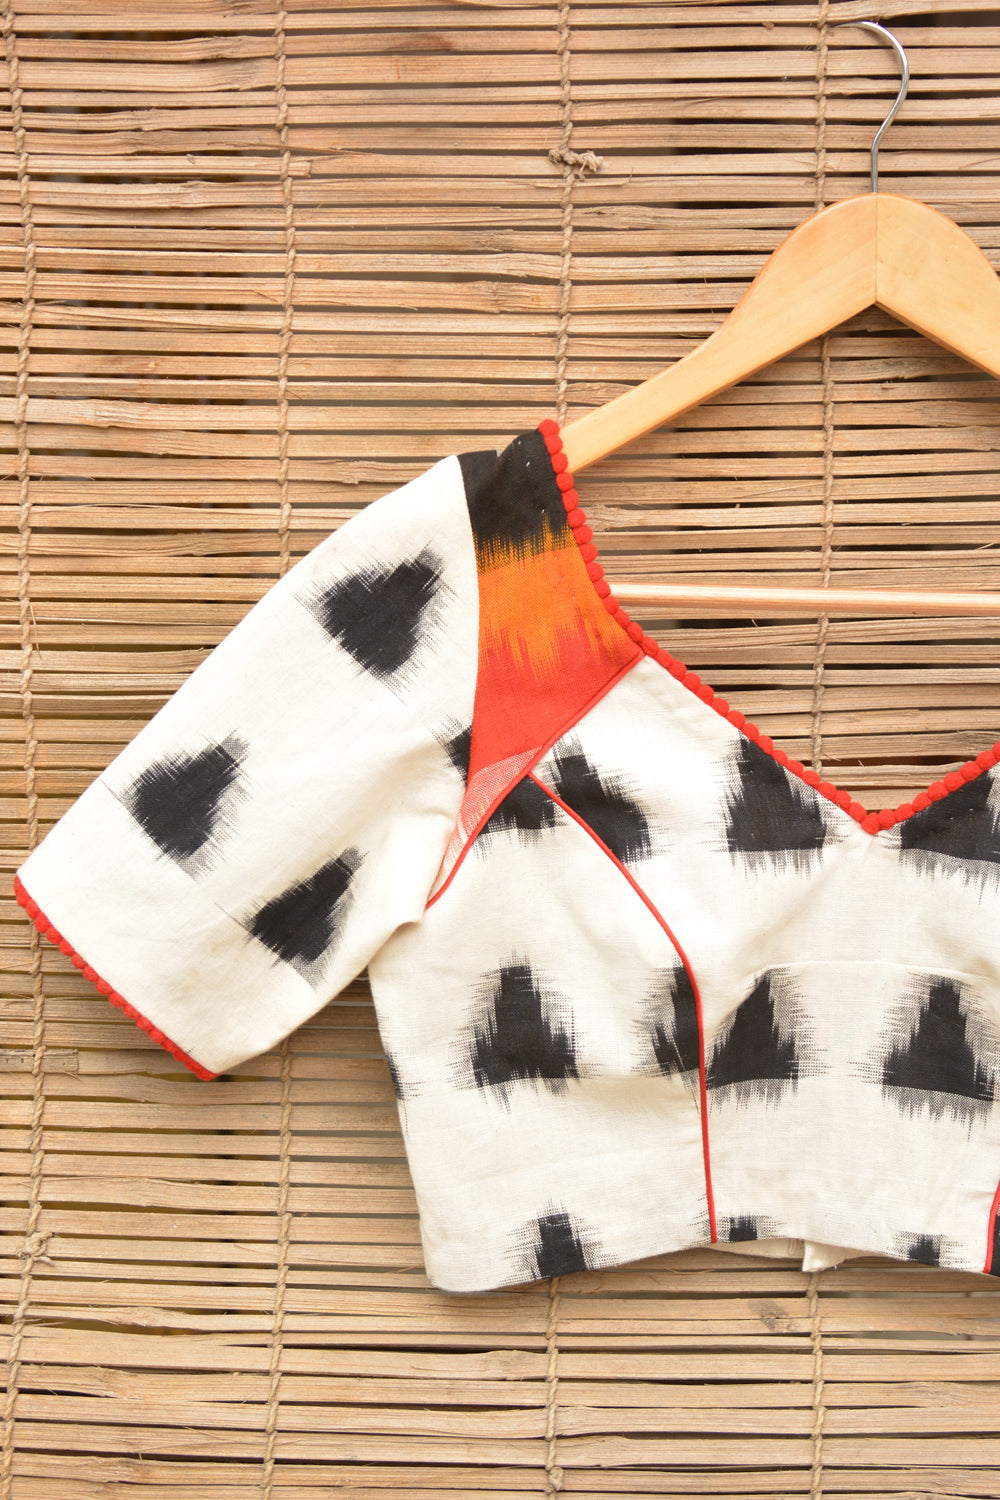 White and black Ikat cotton armband blouse with red pom pom detailing